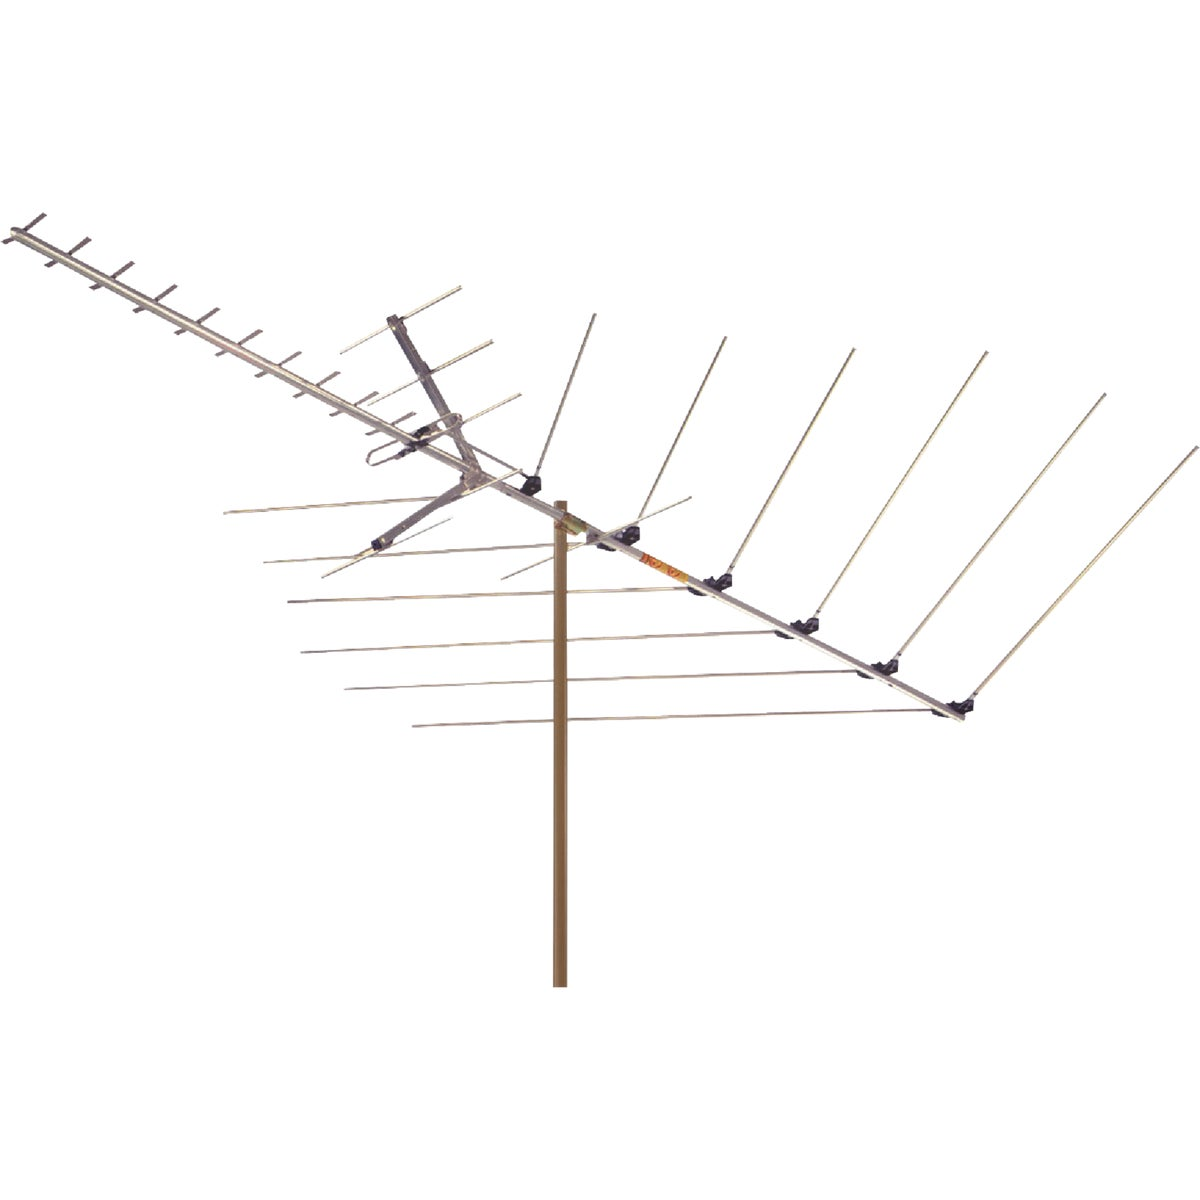 U/V/F/HD OUTDOOR ANTENNA - ANT3036XR by Audiovox Accessories